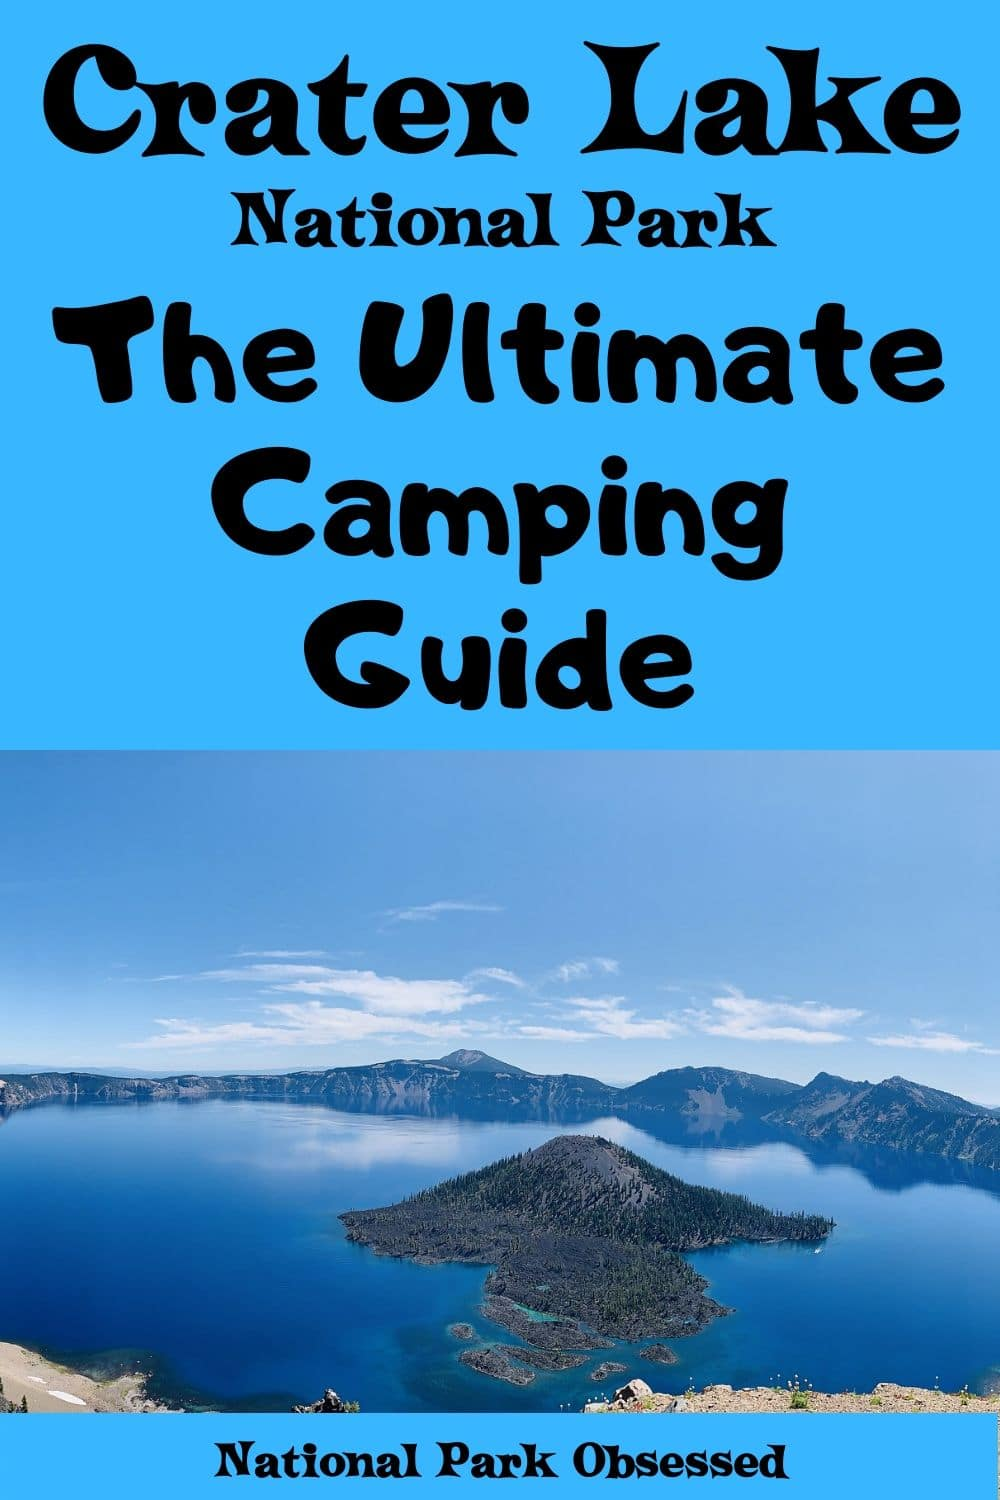 Planning on going camping in Crater Lake National Park? Confused about which campsite to pick. National Park Obsessed\'s Ultimate Guide is here to help you pick the very best campsite. Crater Lake national park vacation. Crater Lake national park | Crater Lake national park vacation | Crater Lake national park photography | Crater Lake national park itinerary | Crater Lake hikes | Crater Lake itinerary